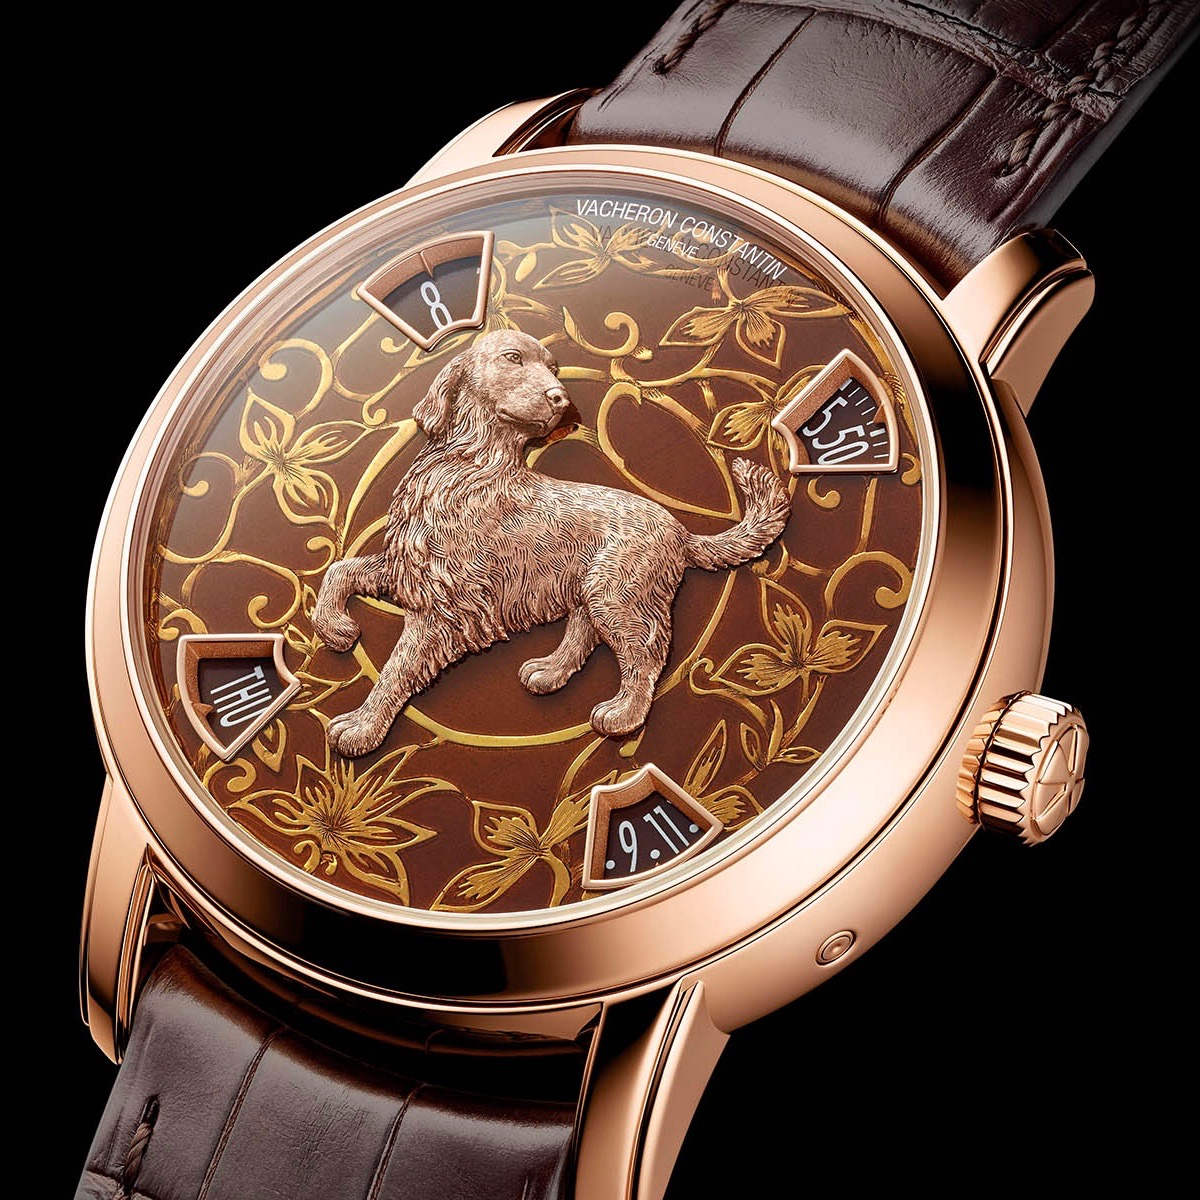 Vacheron Constantin Métiers d'Art The legend of the Chinese zodiac - Year of the dog